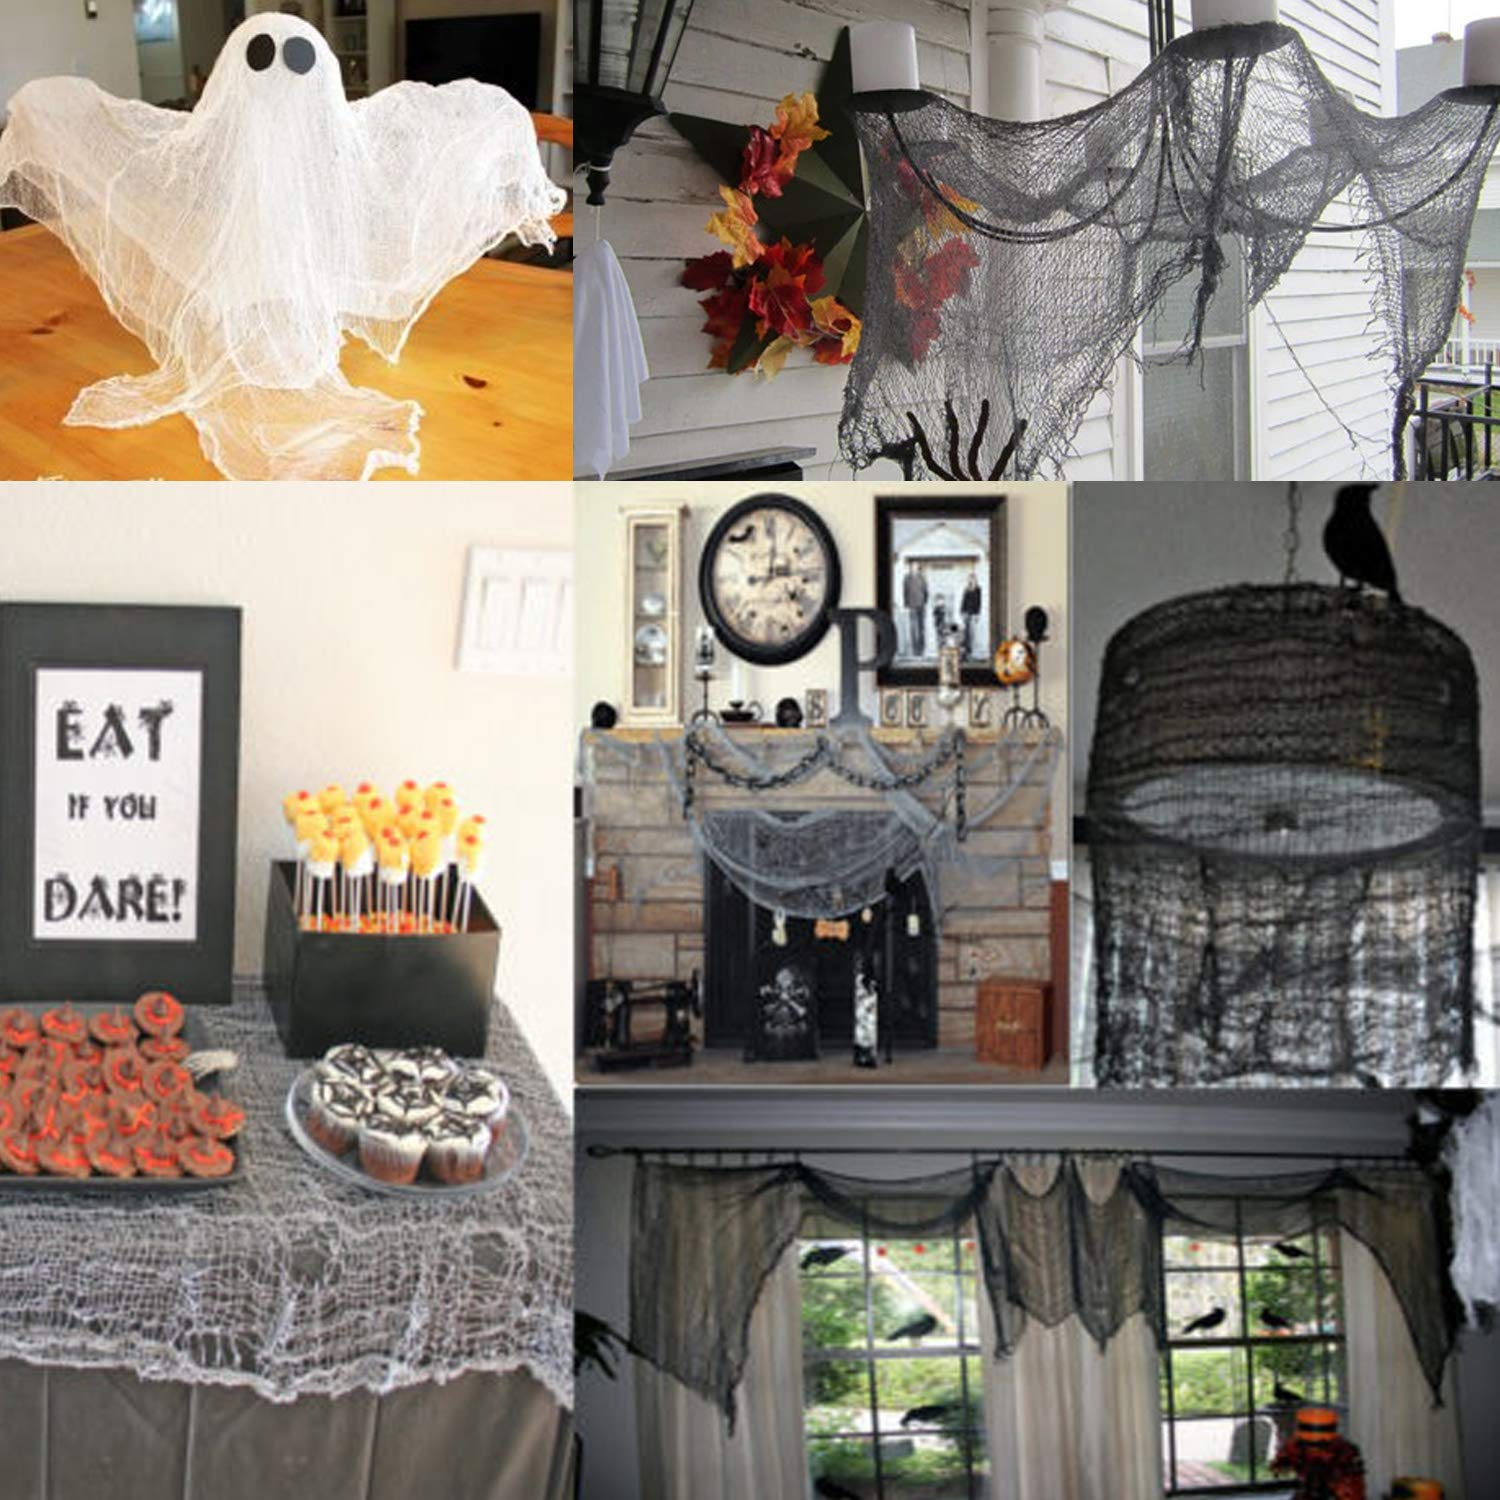 Gray ziyue 5.5 Yards X 40 Include Hanging Outdoor Indoor Scary Creepy Halloween Office Party Door Window Giant Spider Wall Yard Table car Lawn Cloth Decorations Cheesecloth Fabric